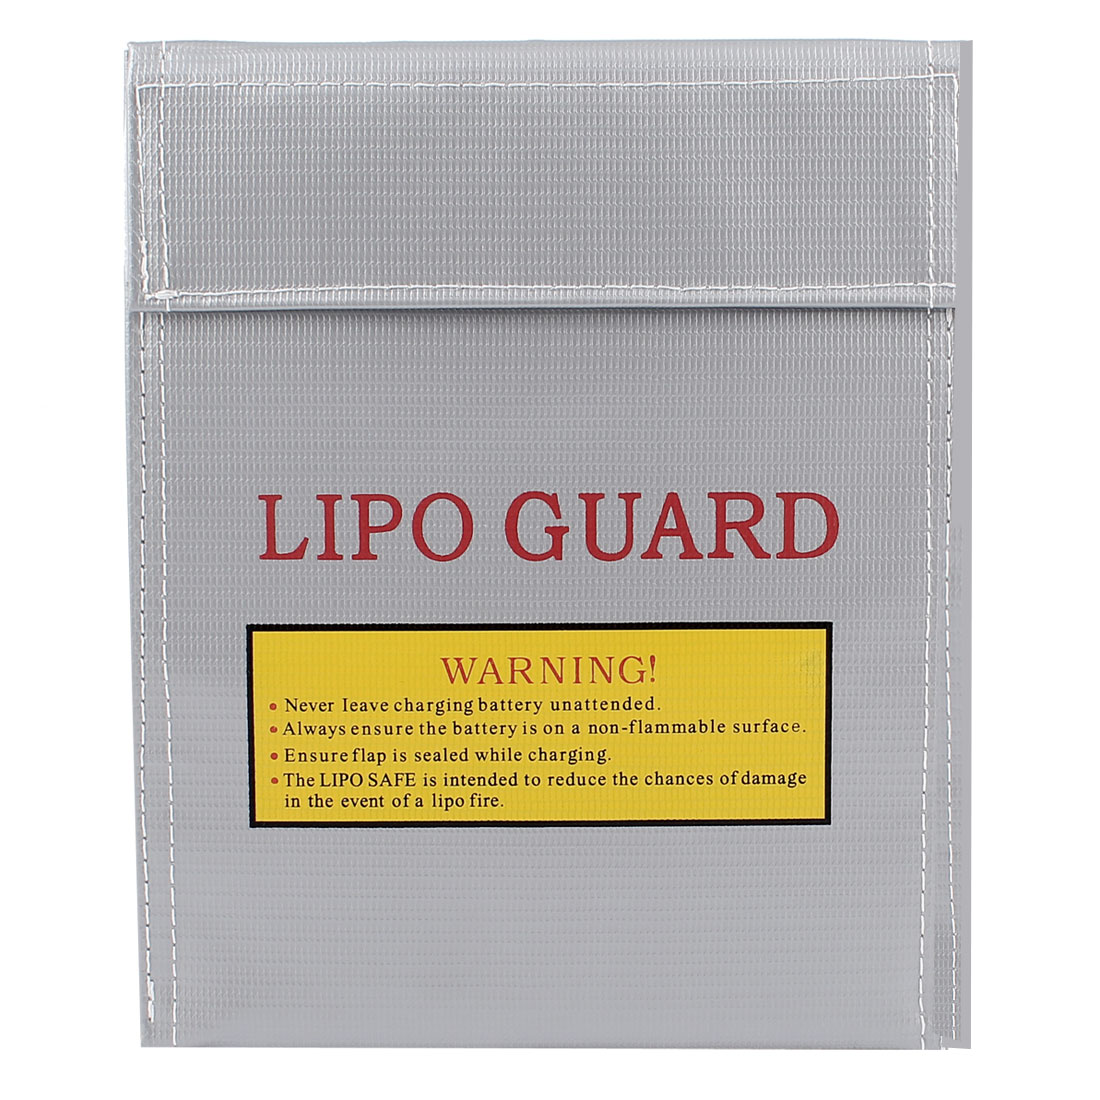 18cm x 22cm RC LiPo Battery Safety Guard Fireproof Charging Bag Silver Gray